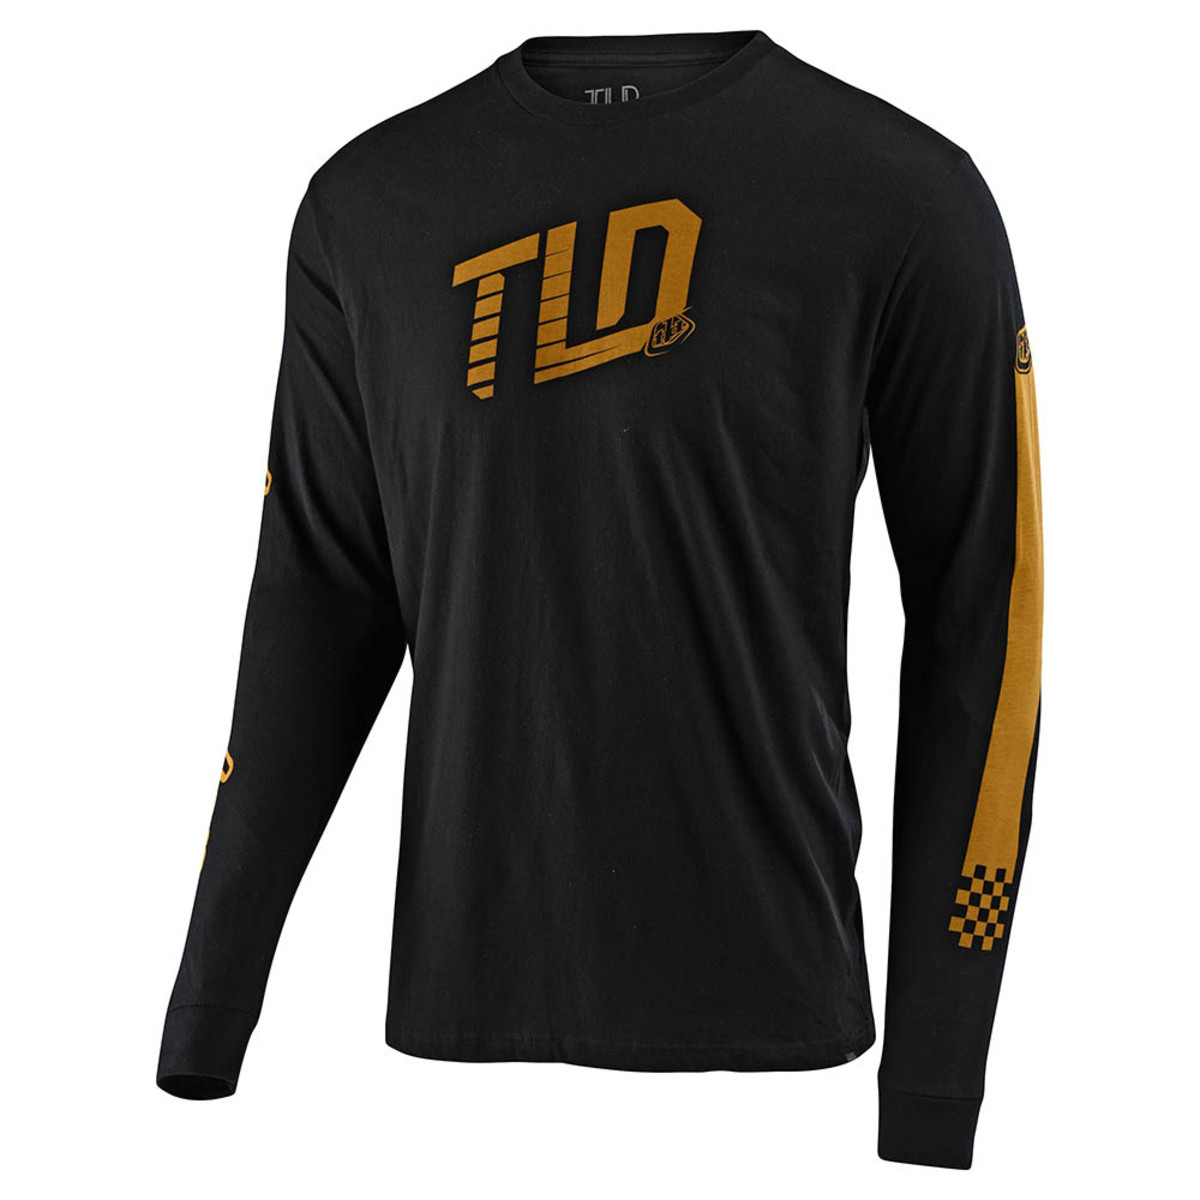 Troy Lee Designs TLD Long Sleeved T-Shirt Racing Special White//Black